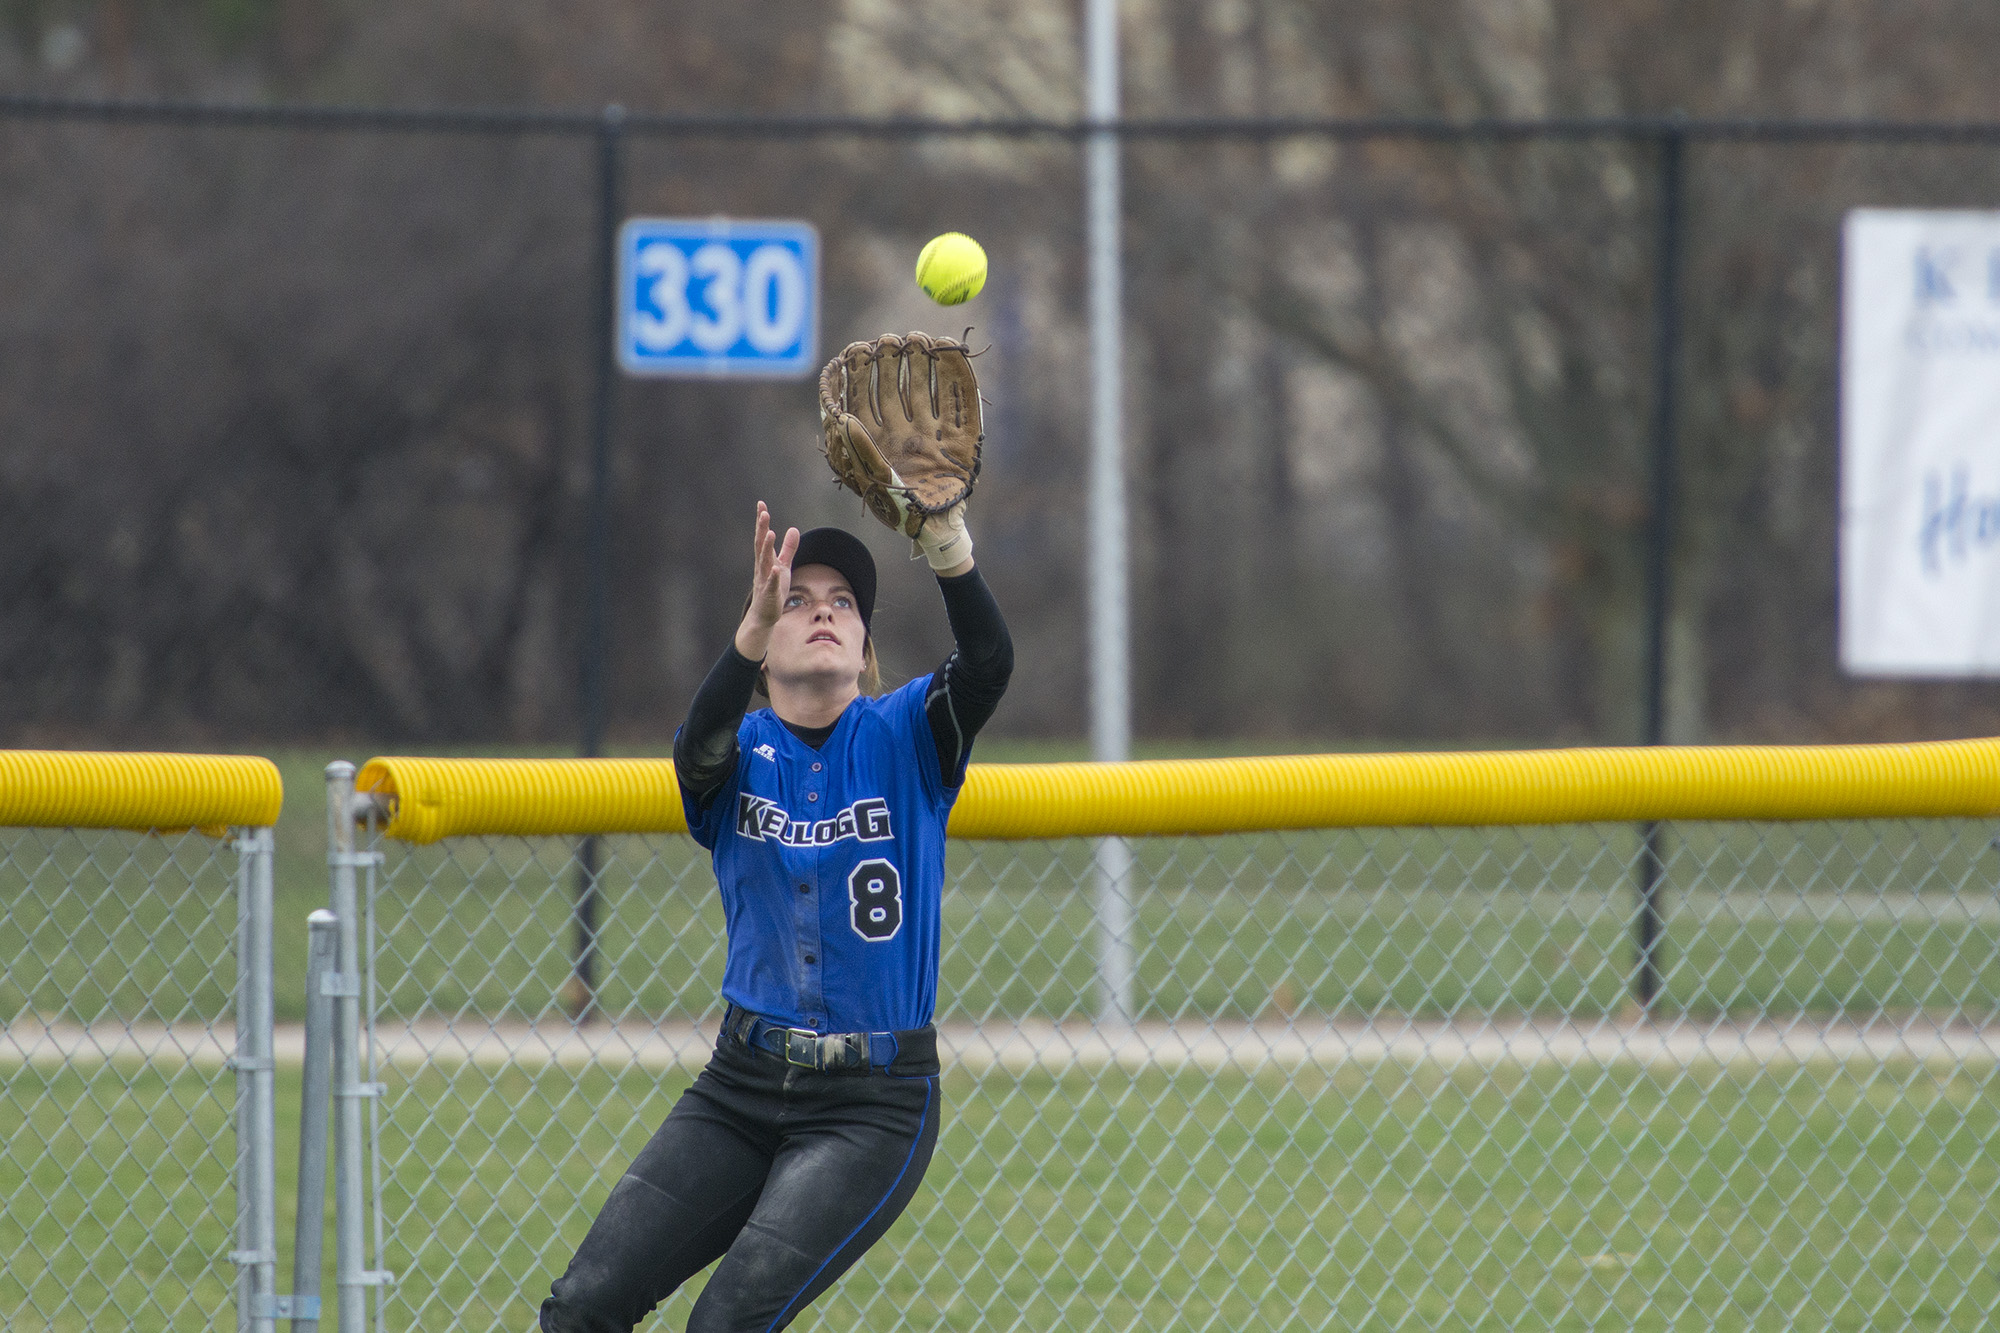 A KCC softball player catches a ball in the outfield during a home game at Bailey Park in Battle Creek.